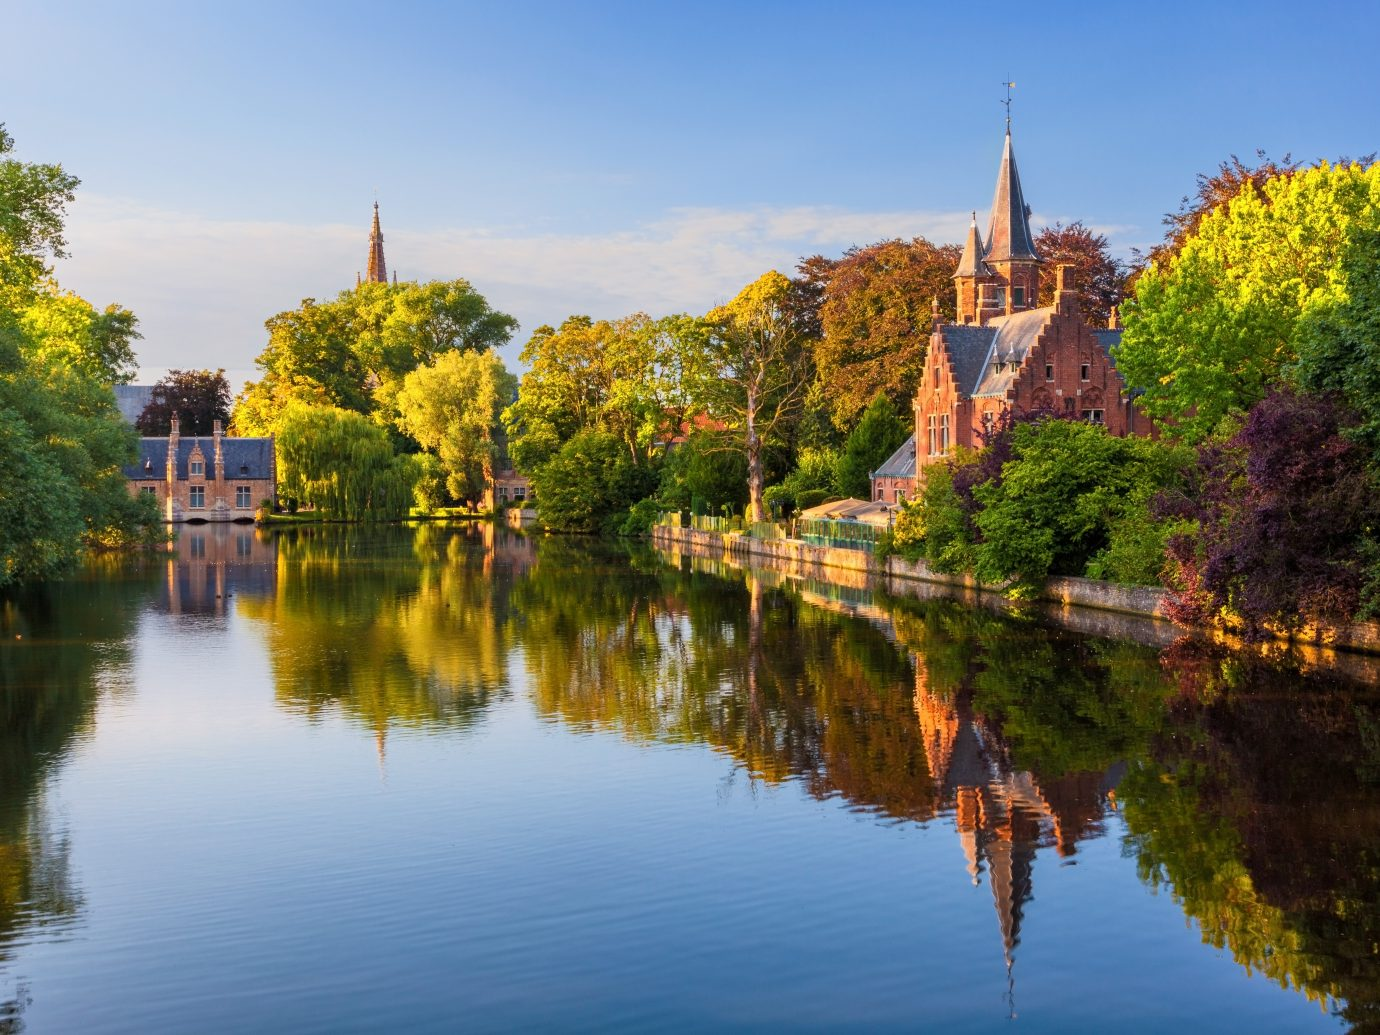 The Minnewater in historic Bruges